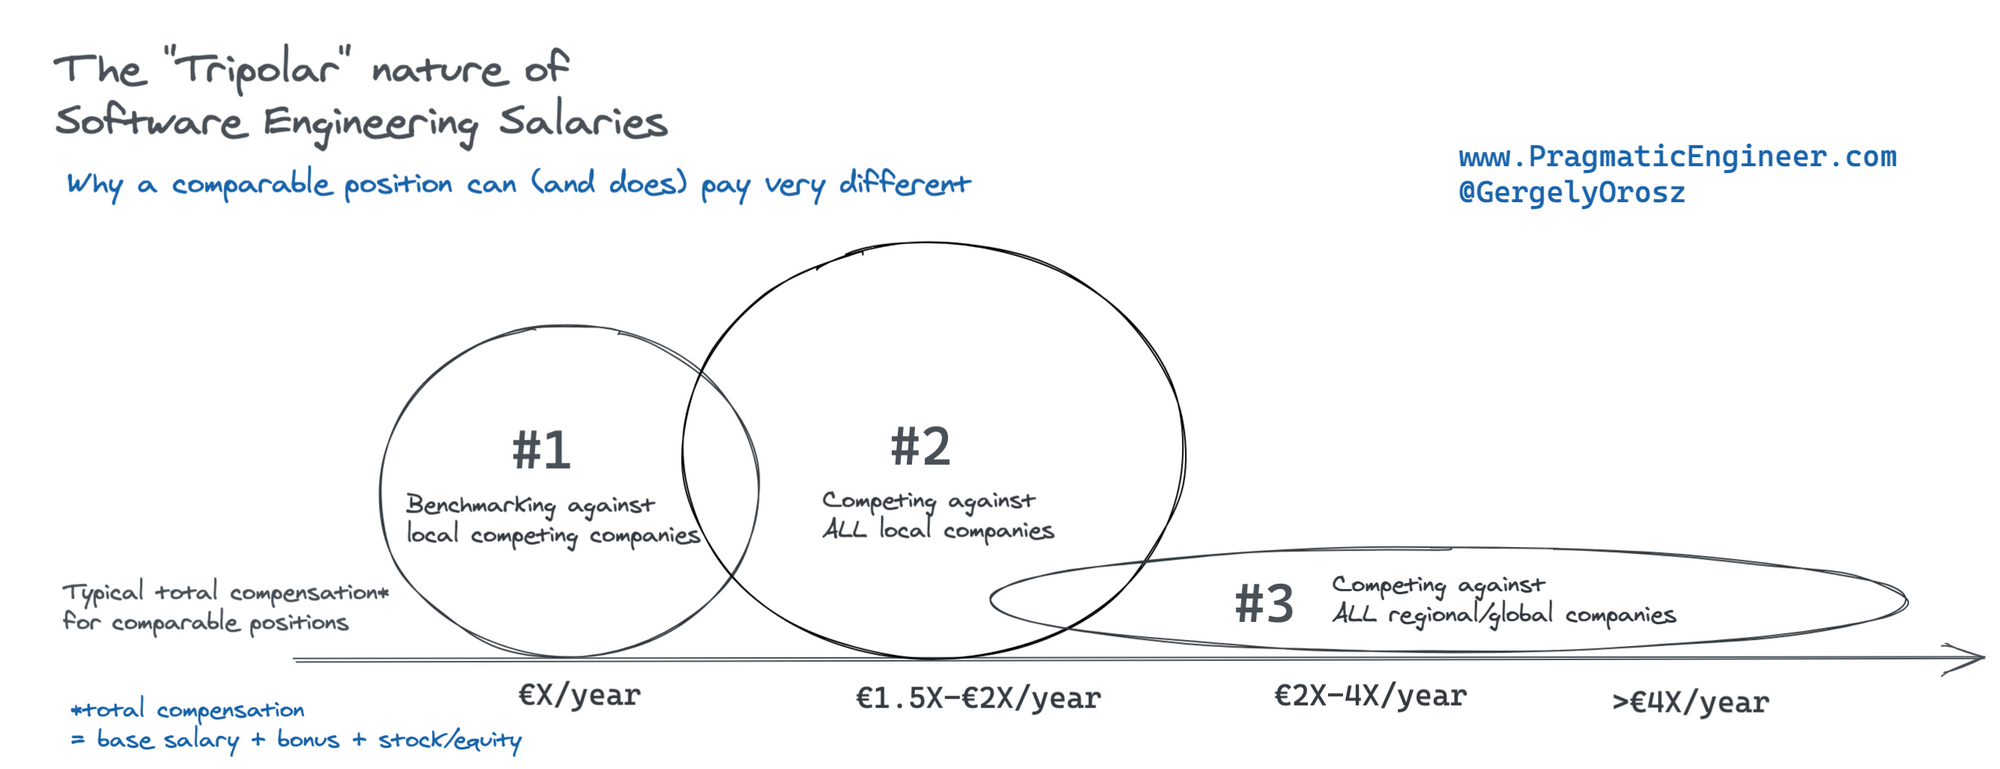 The Trimodal Nature of Software Engineering Salaries in the Netherlands and Europe